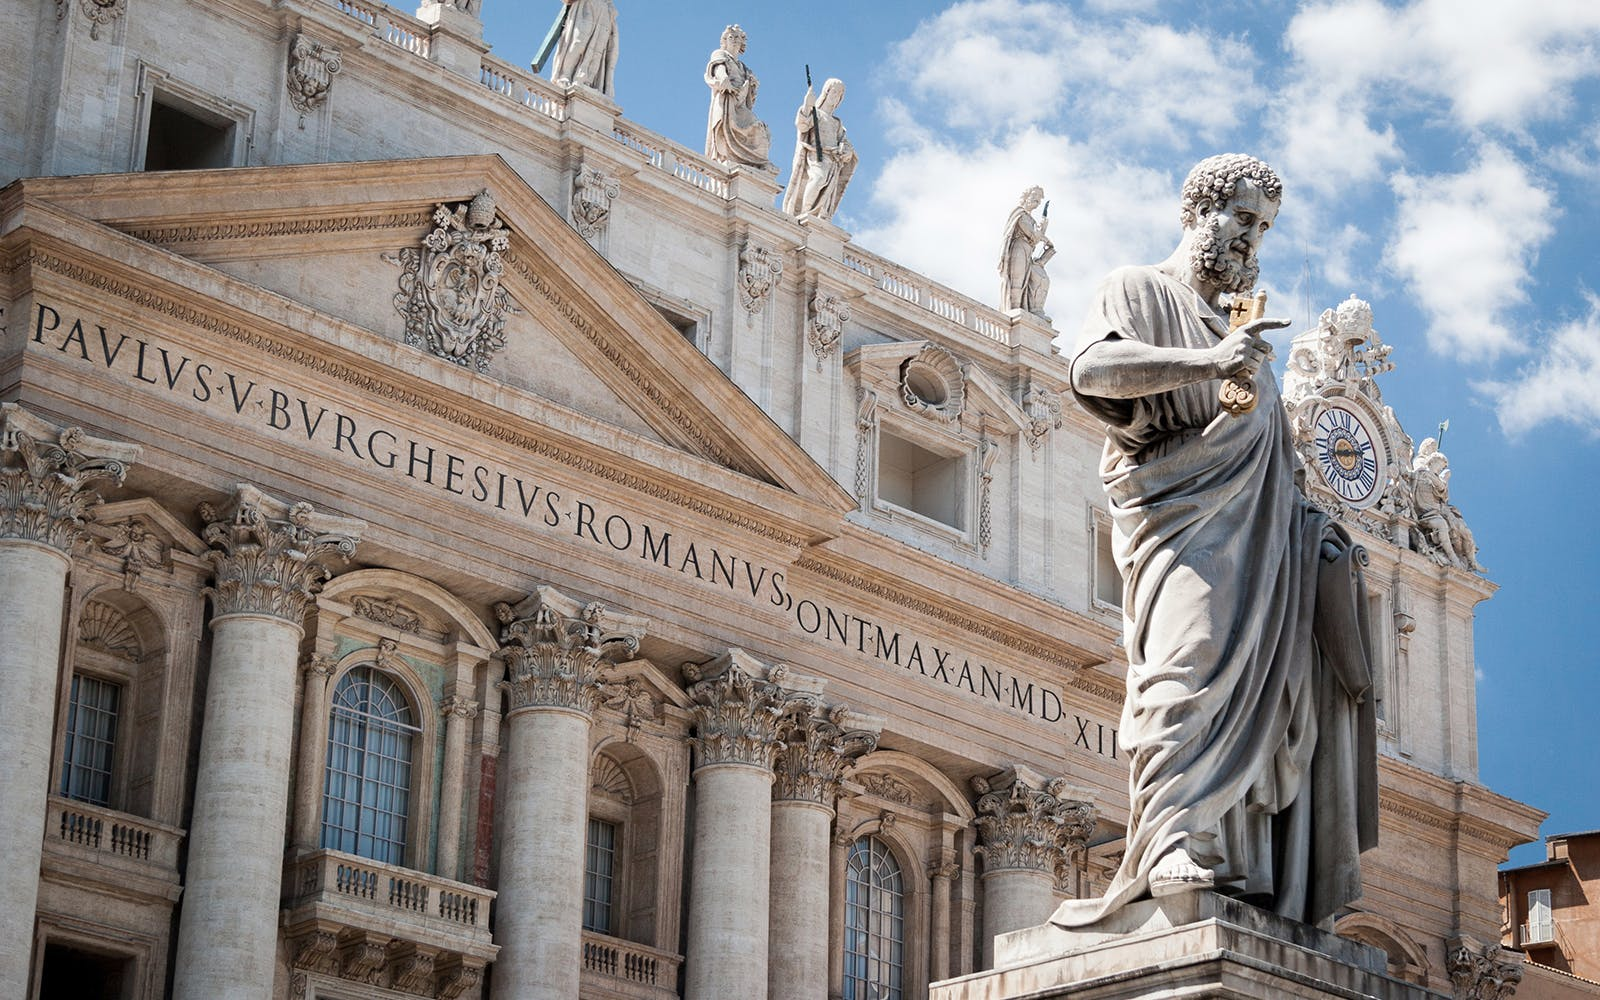 Skip the Line: Guided Tour of St. Peter's Basilica